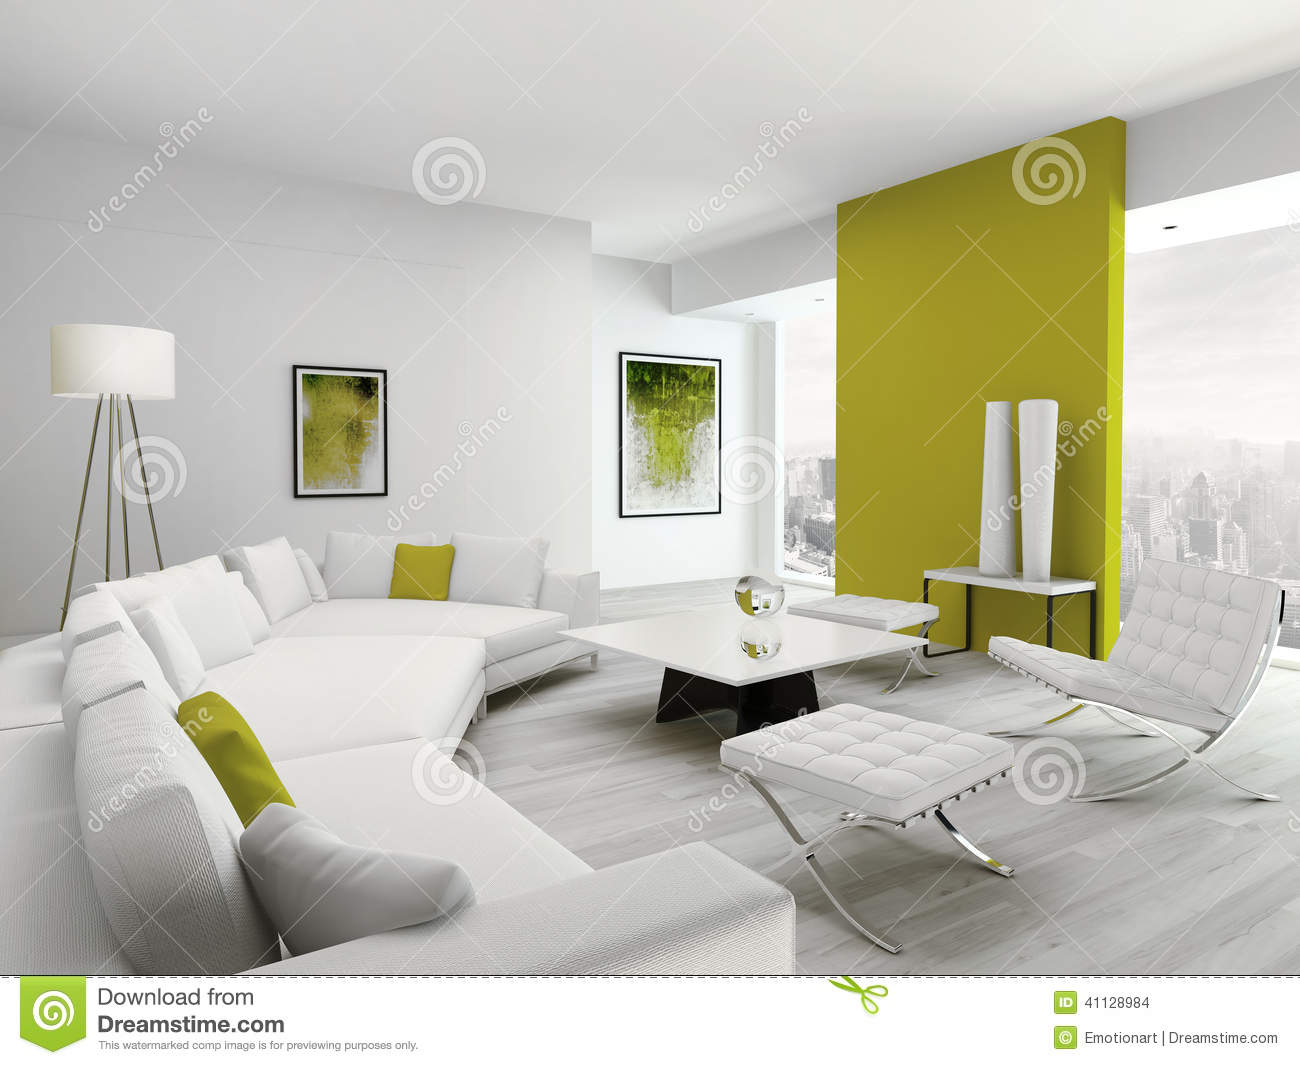 Salon vert et par blanc color moderne int rieur illustration stock illustration du blanc - Salon moderne blanc ...